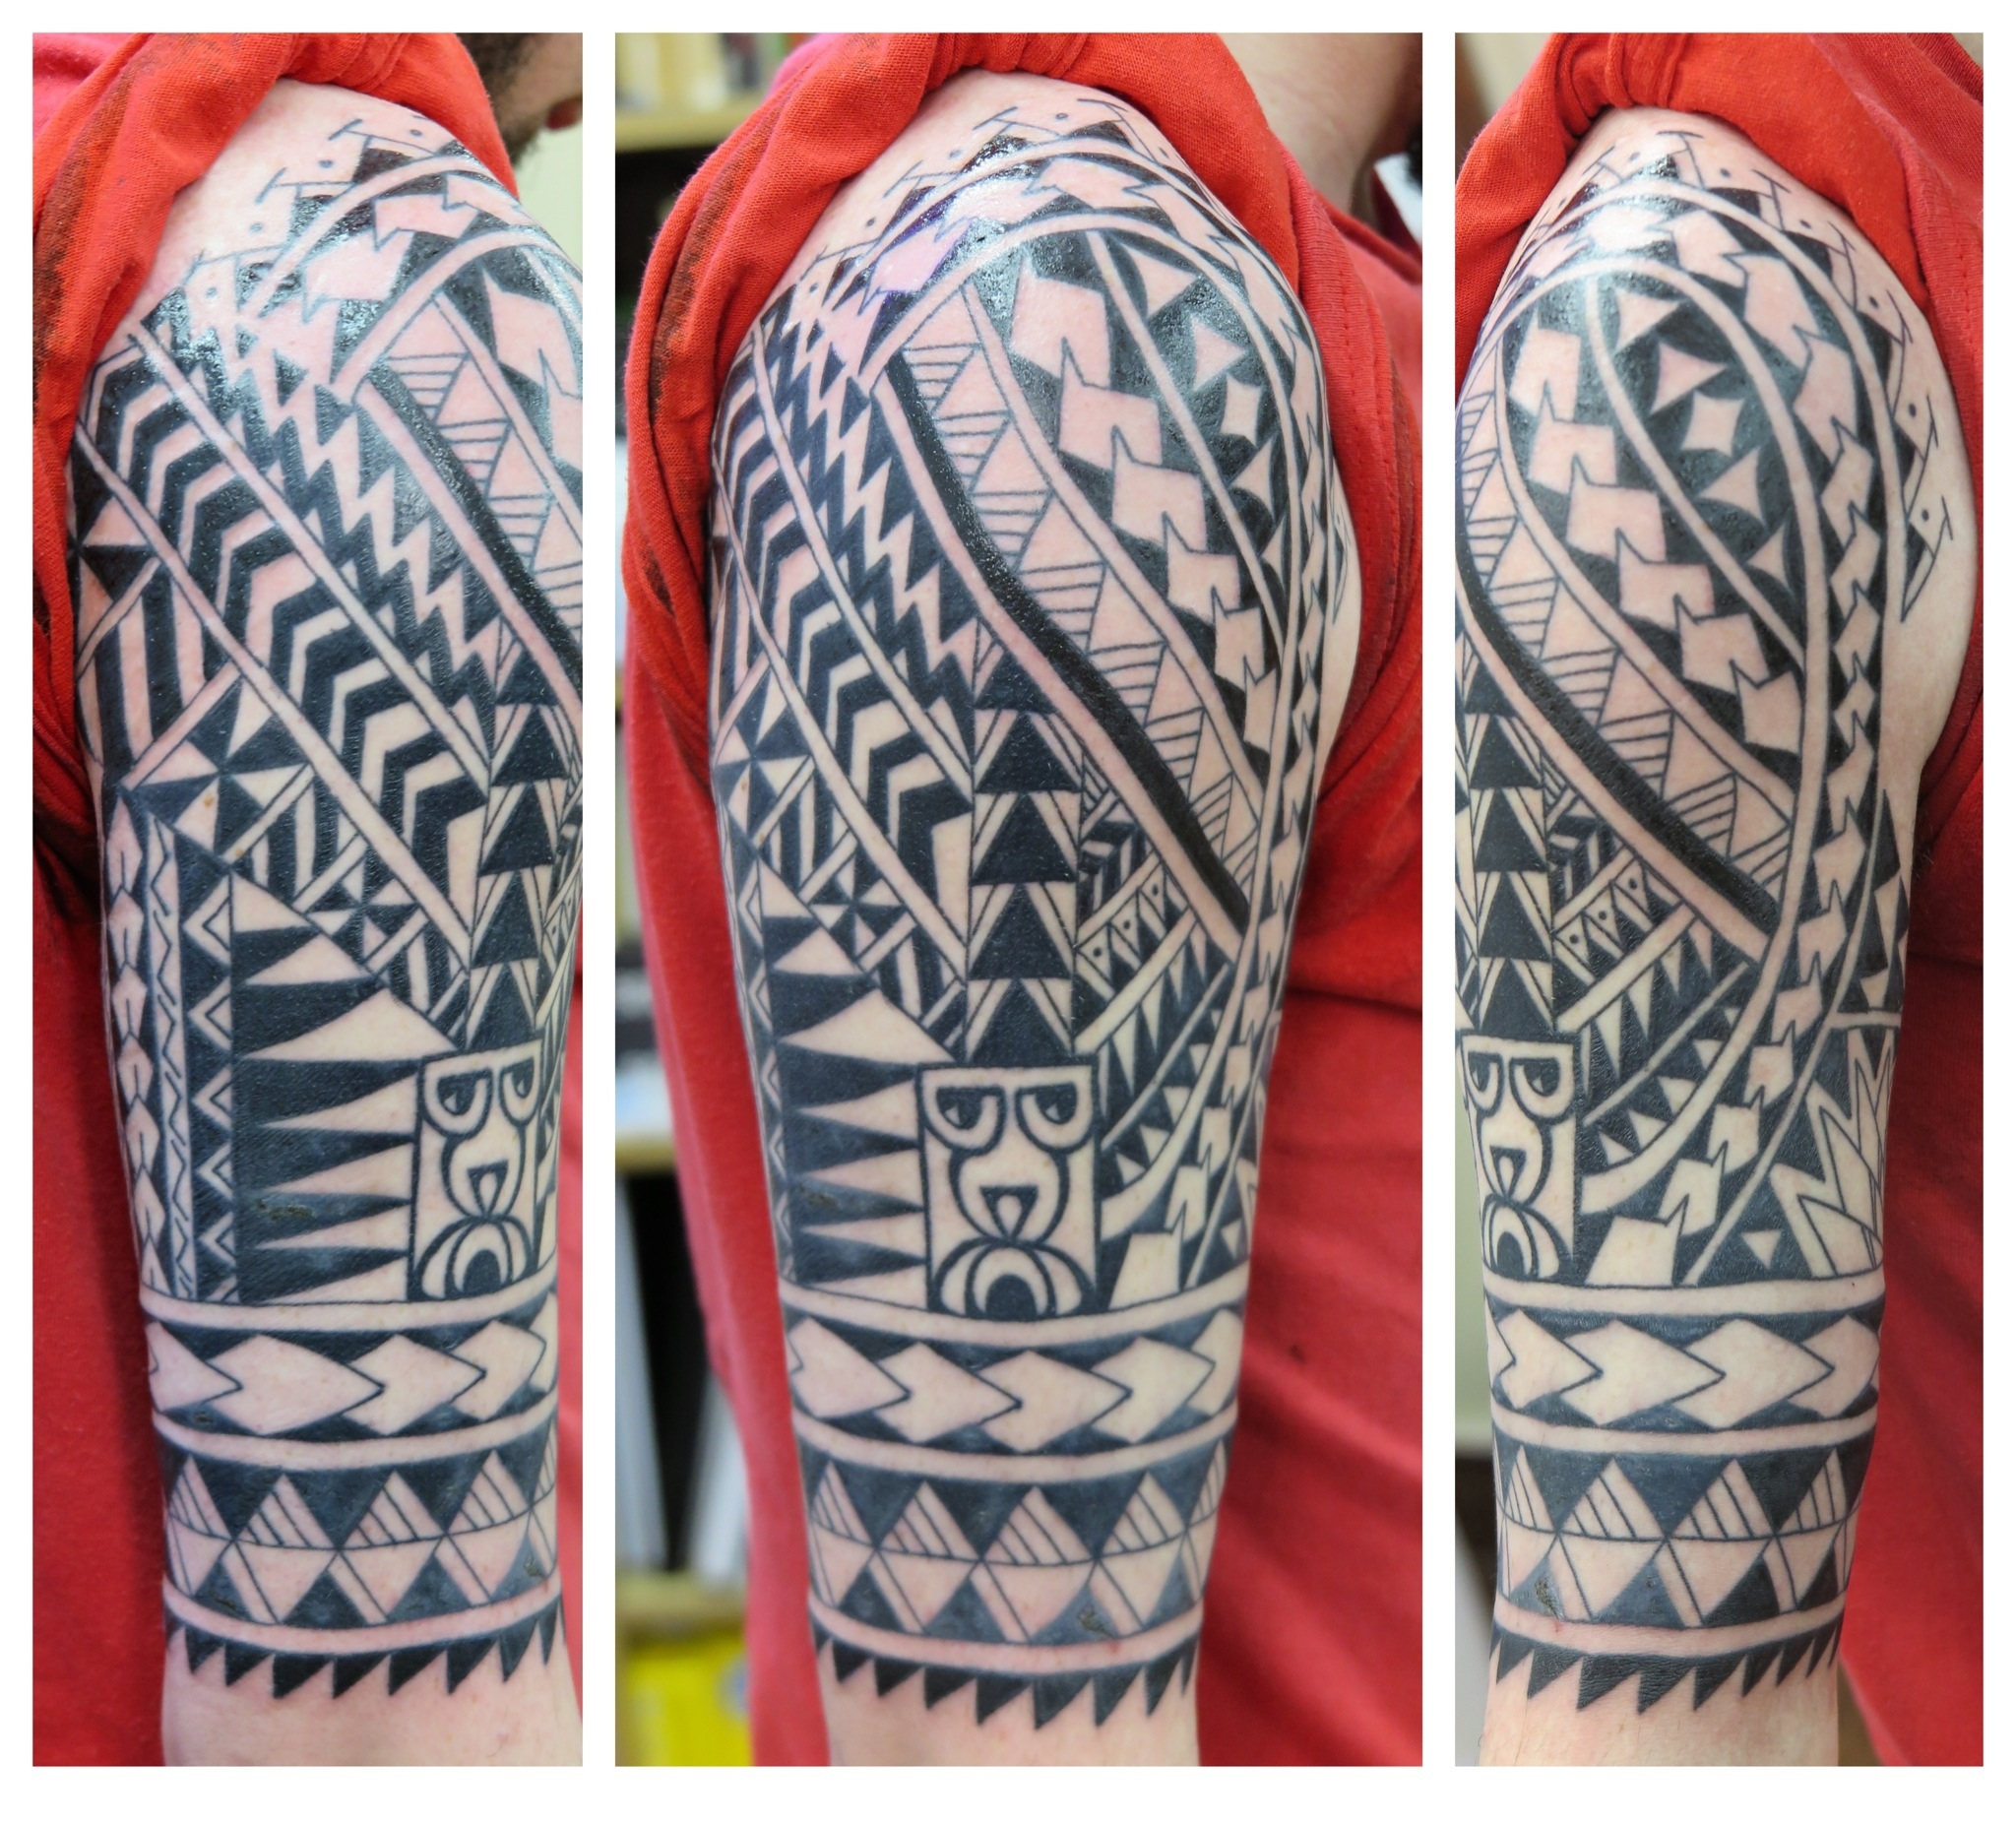 newcastle tattoo images studio tribal 2015 st january on tribal 29 tattoo by tattoo sleeve street irish